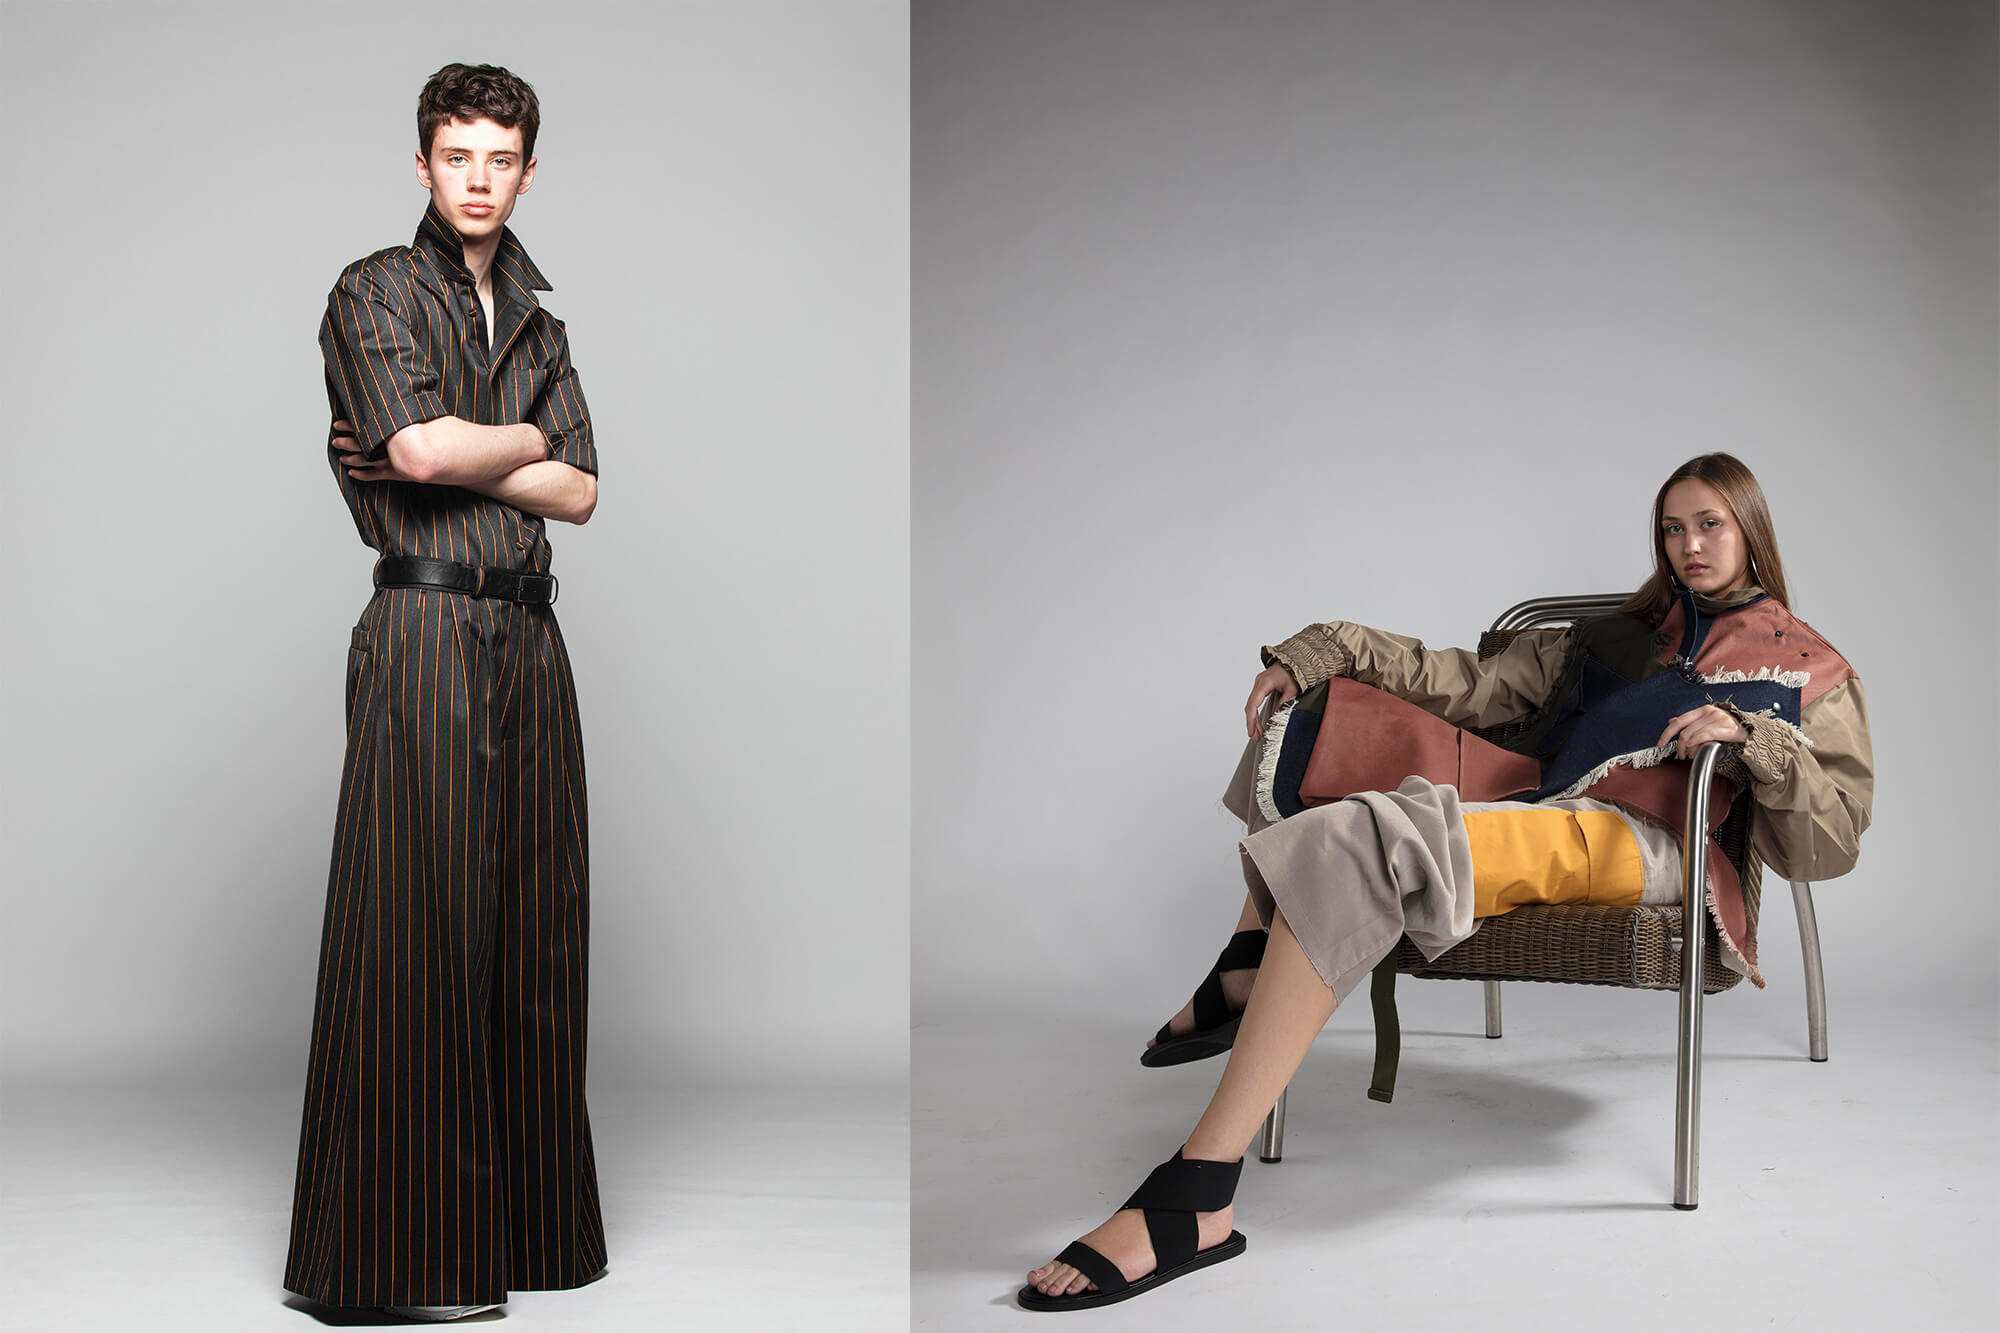 A male stands with their arms folded and a female reclines in a chair for a fashion shoot